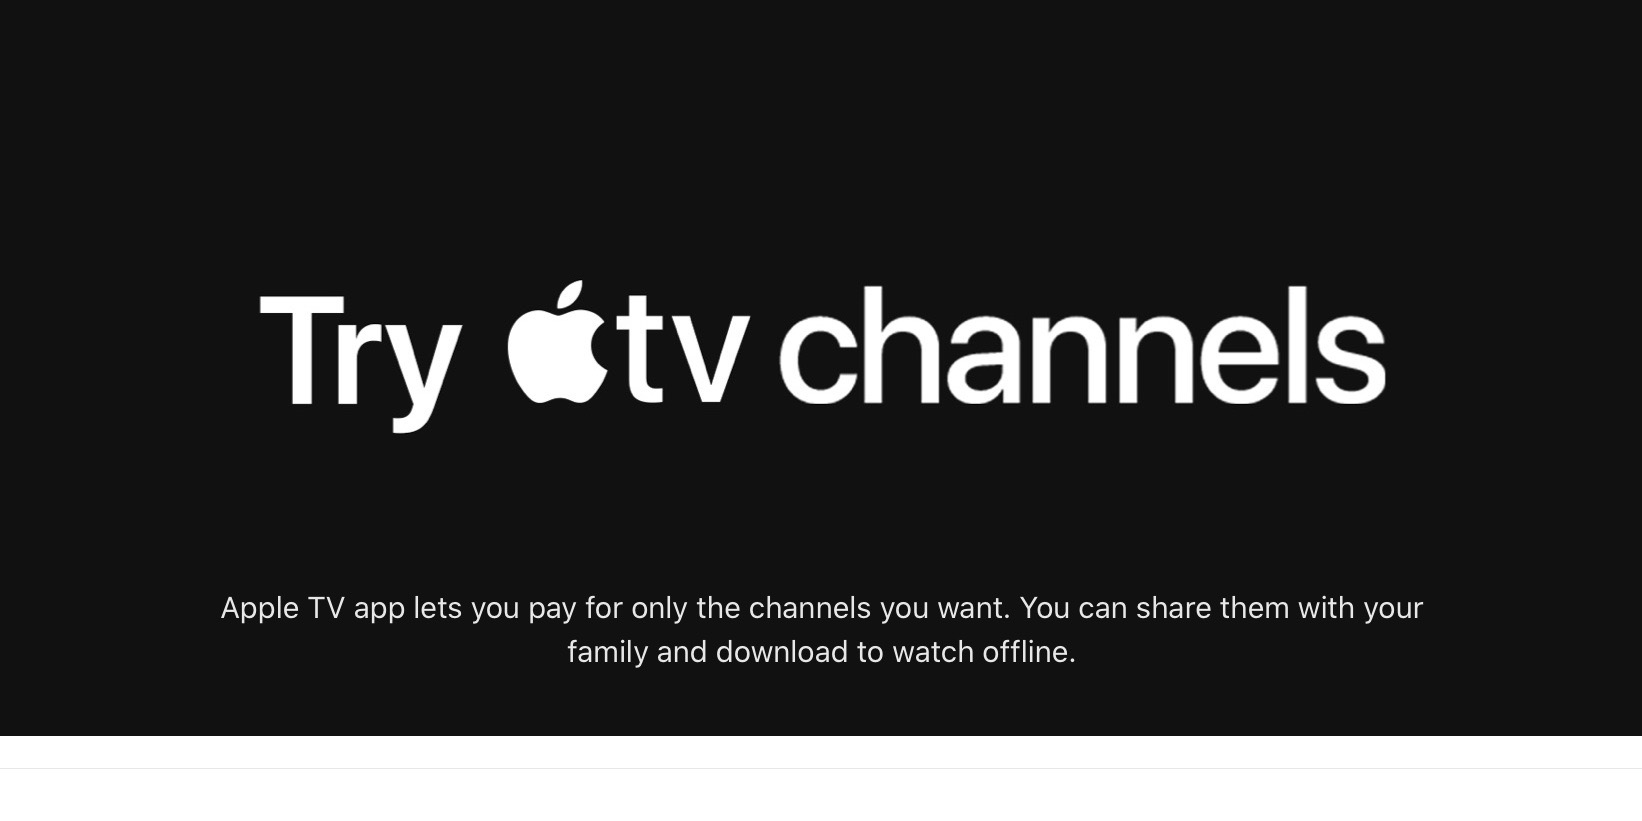 photo of Apple TV Channels offering free EPIX access, extended free trials of Showtime and many more image